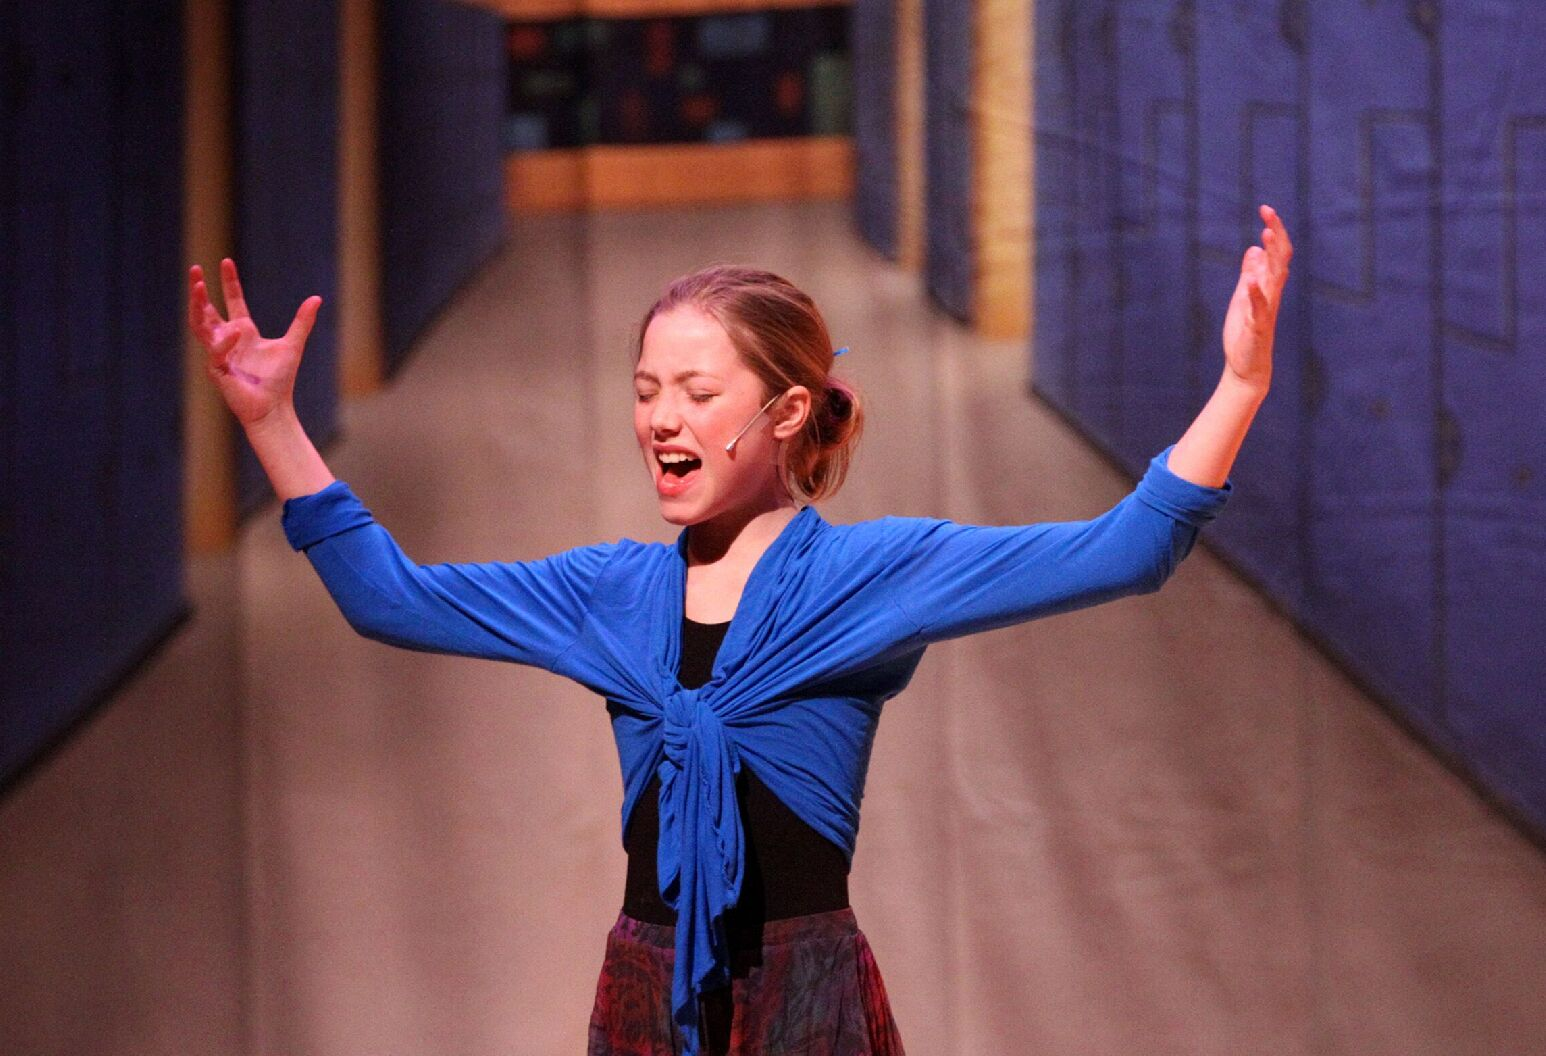 Annika performing in a play